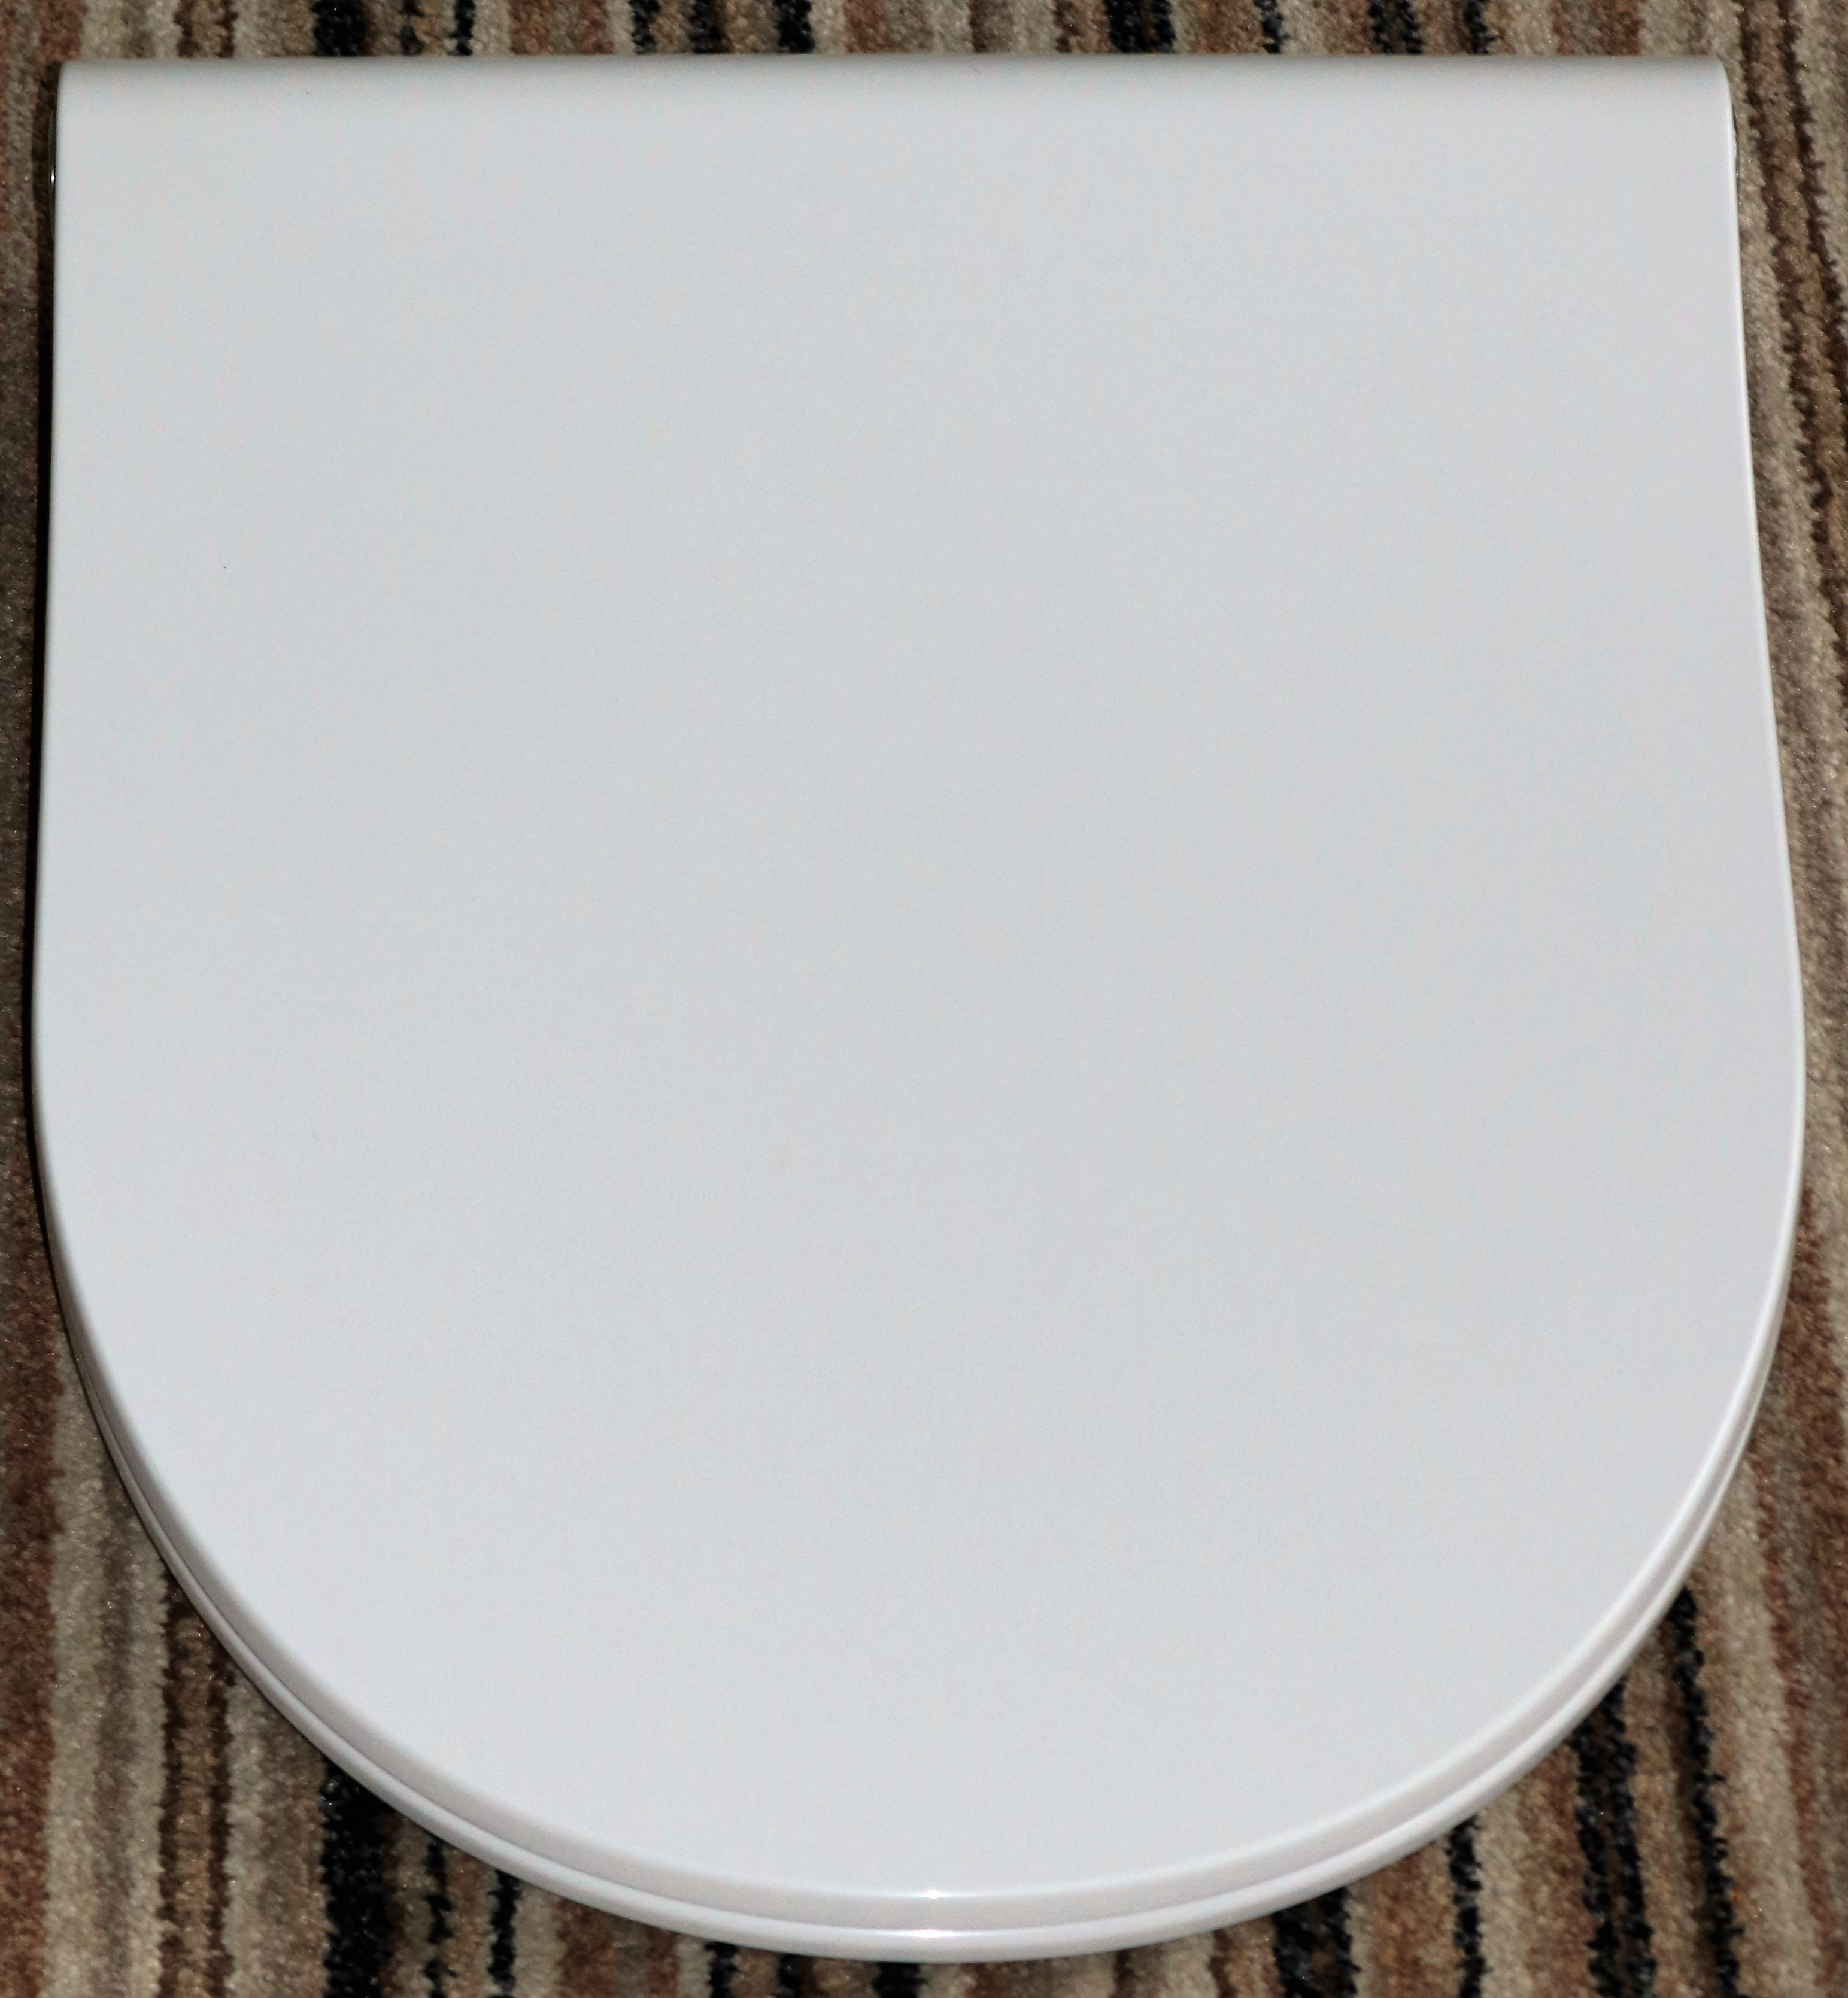 Pressalit Sway-D Seat in White